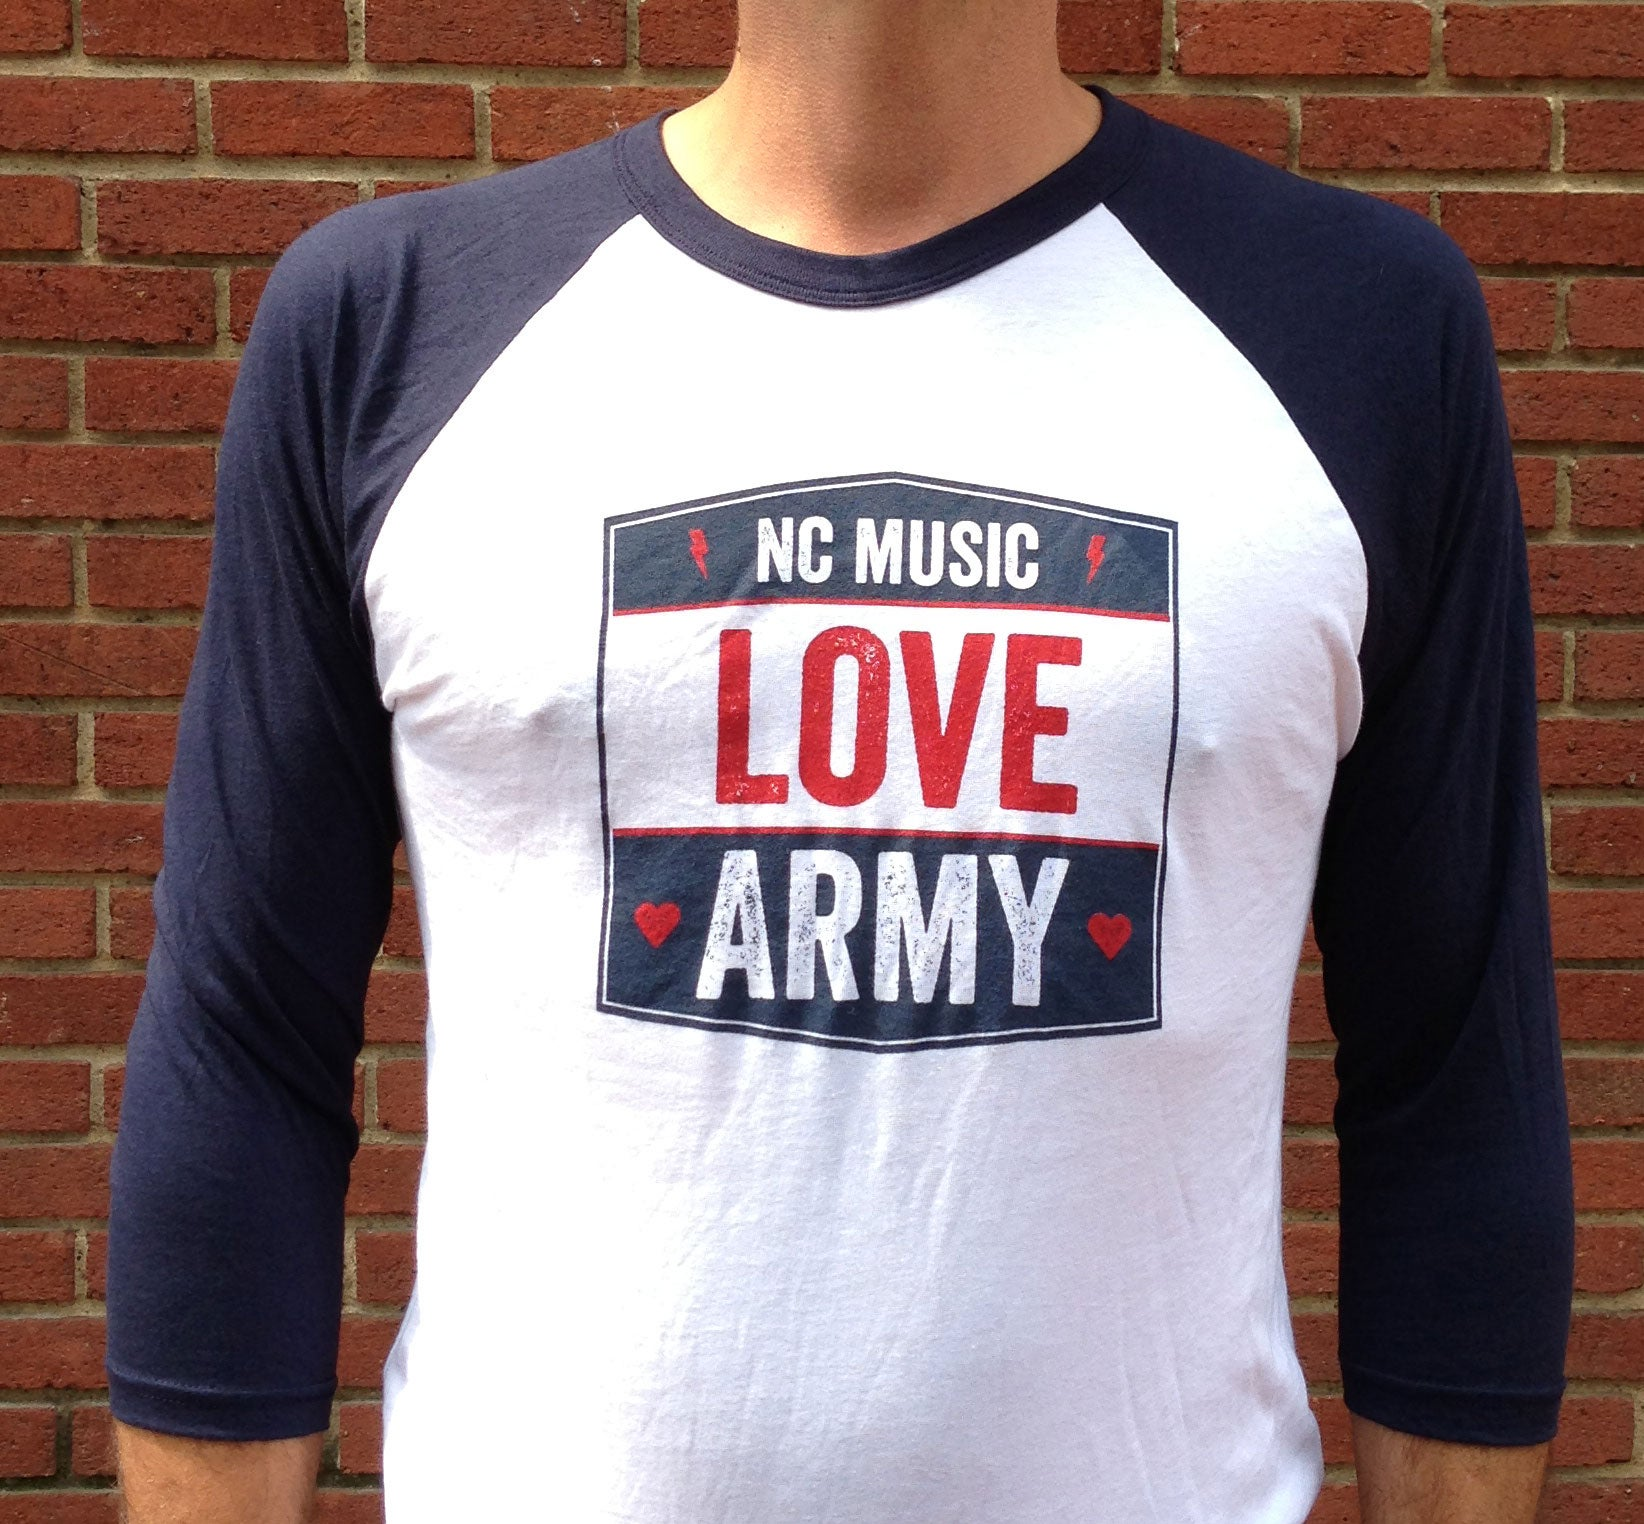 NC Music Love Army Tees